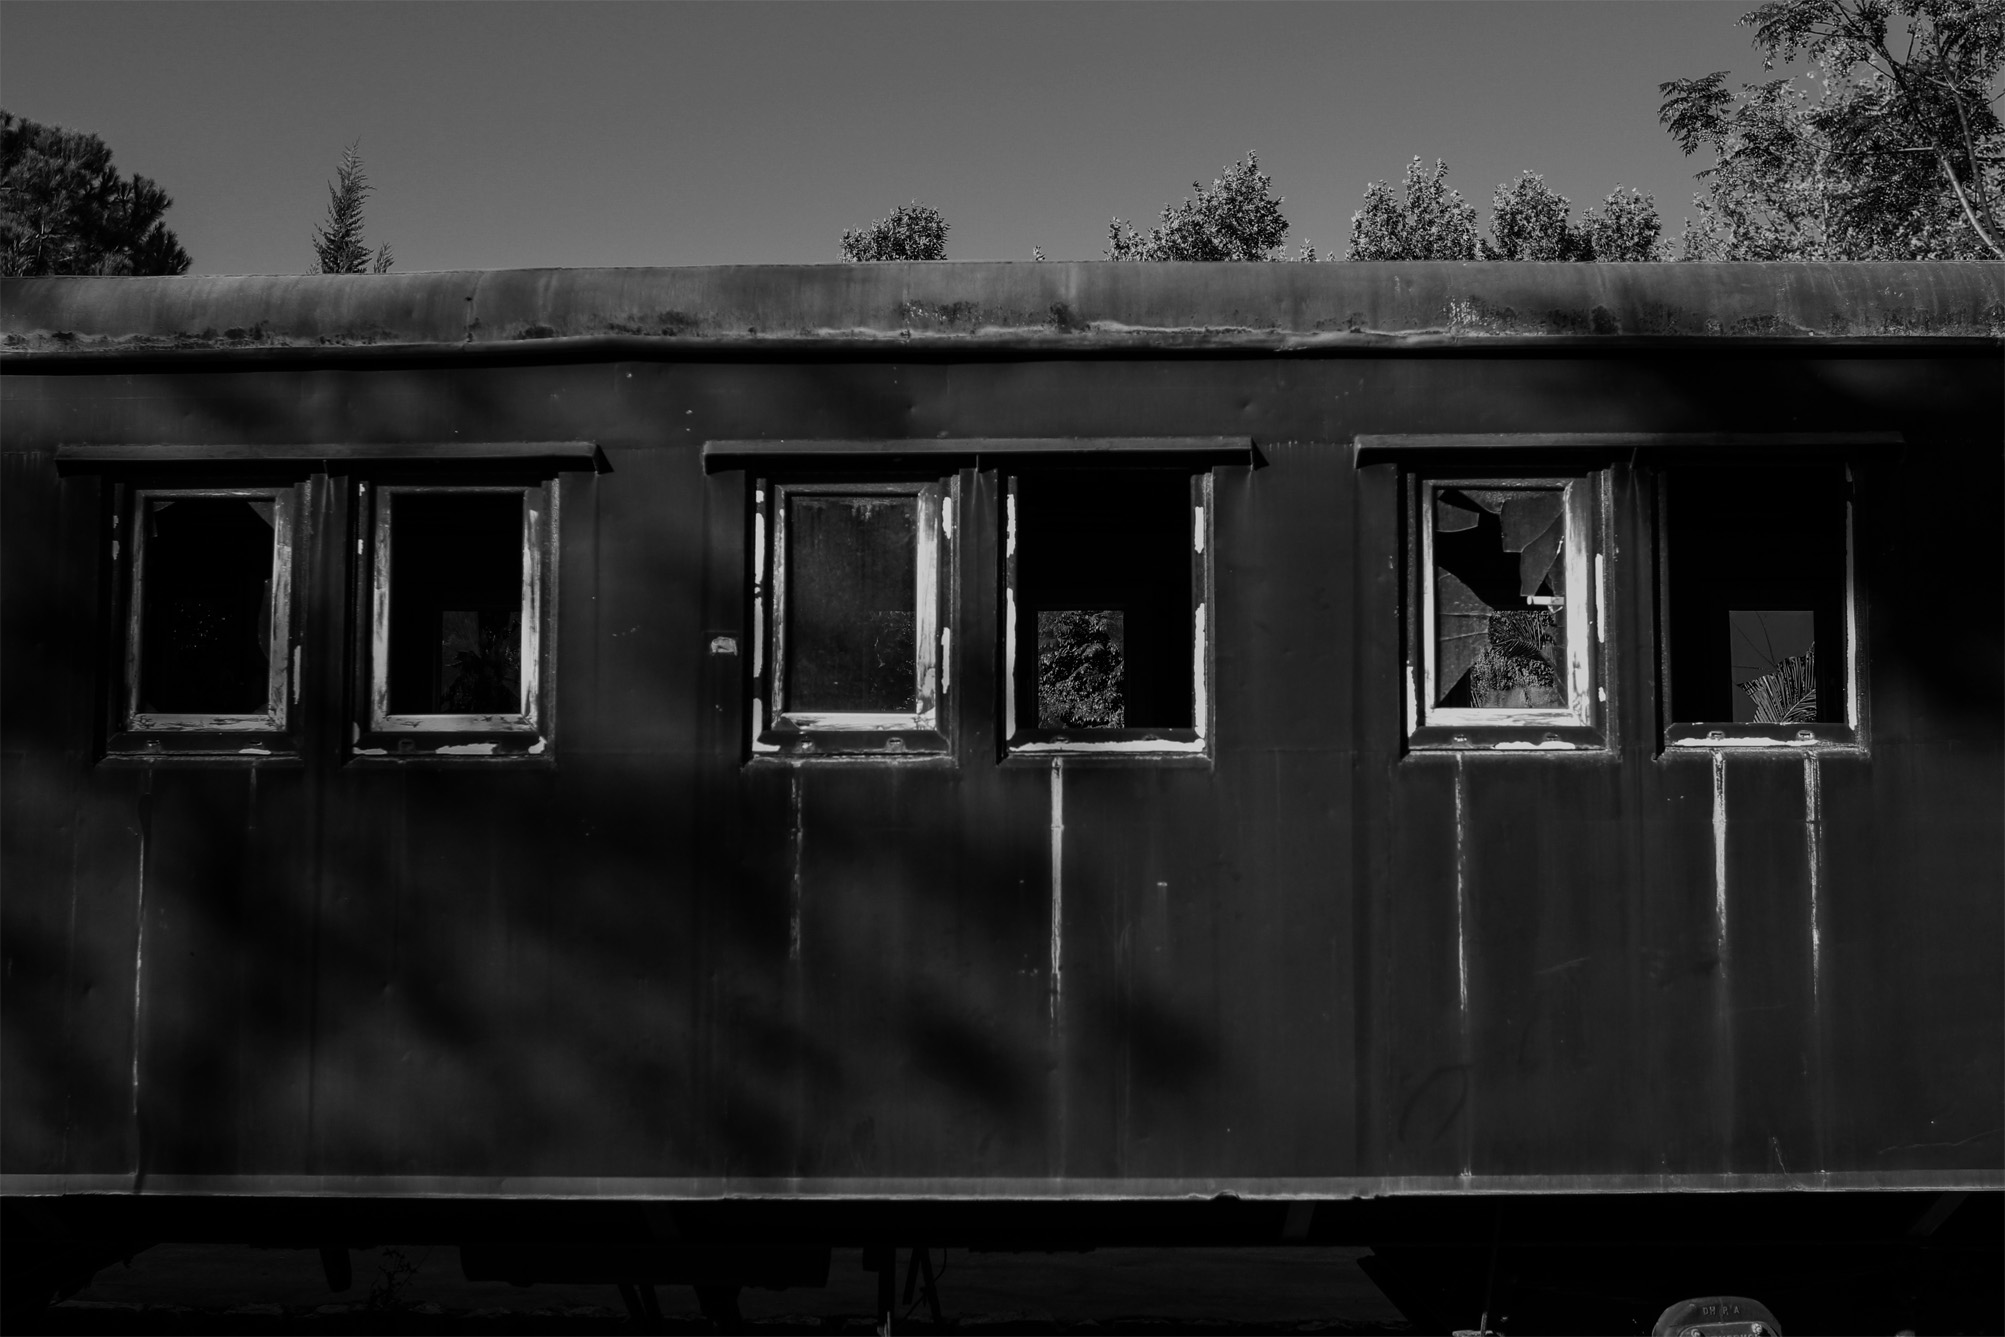 The trains' disappearance